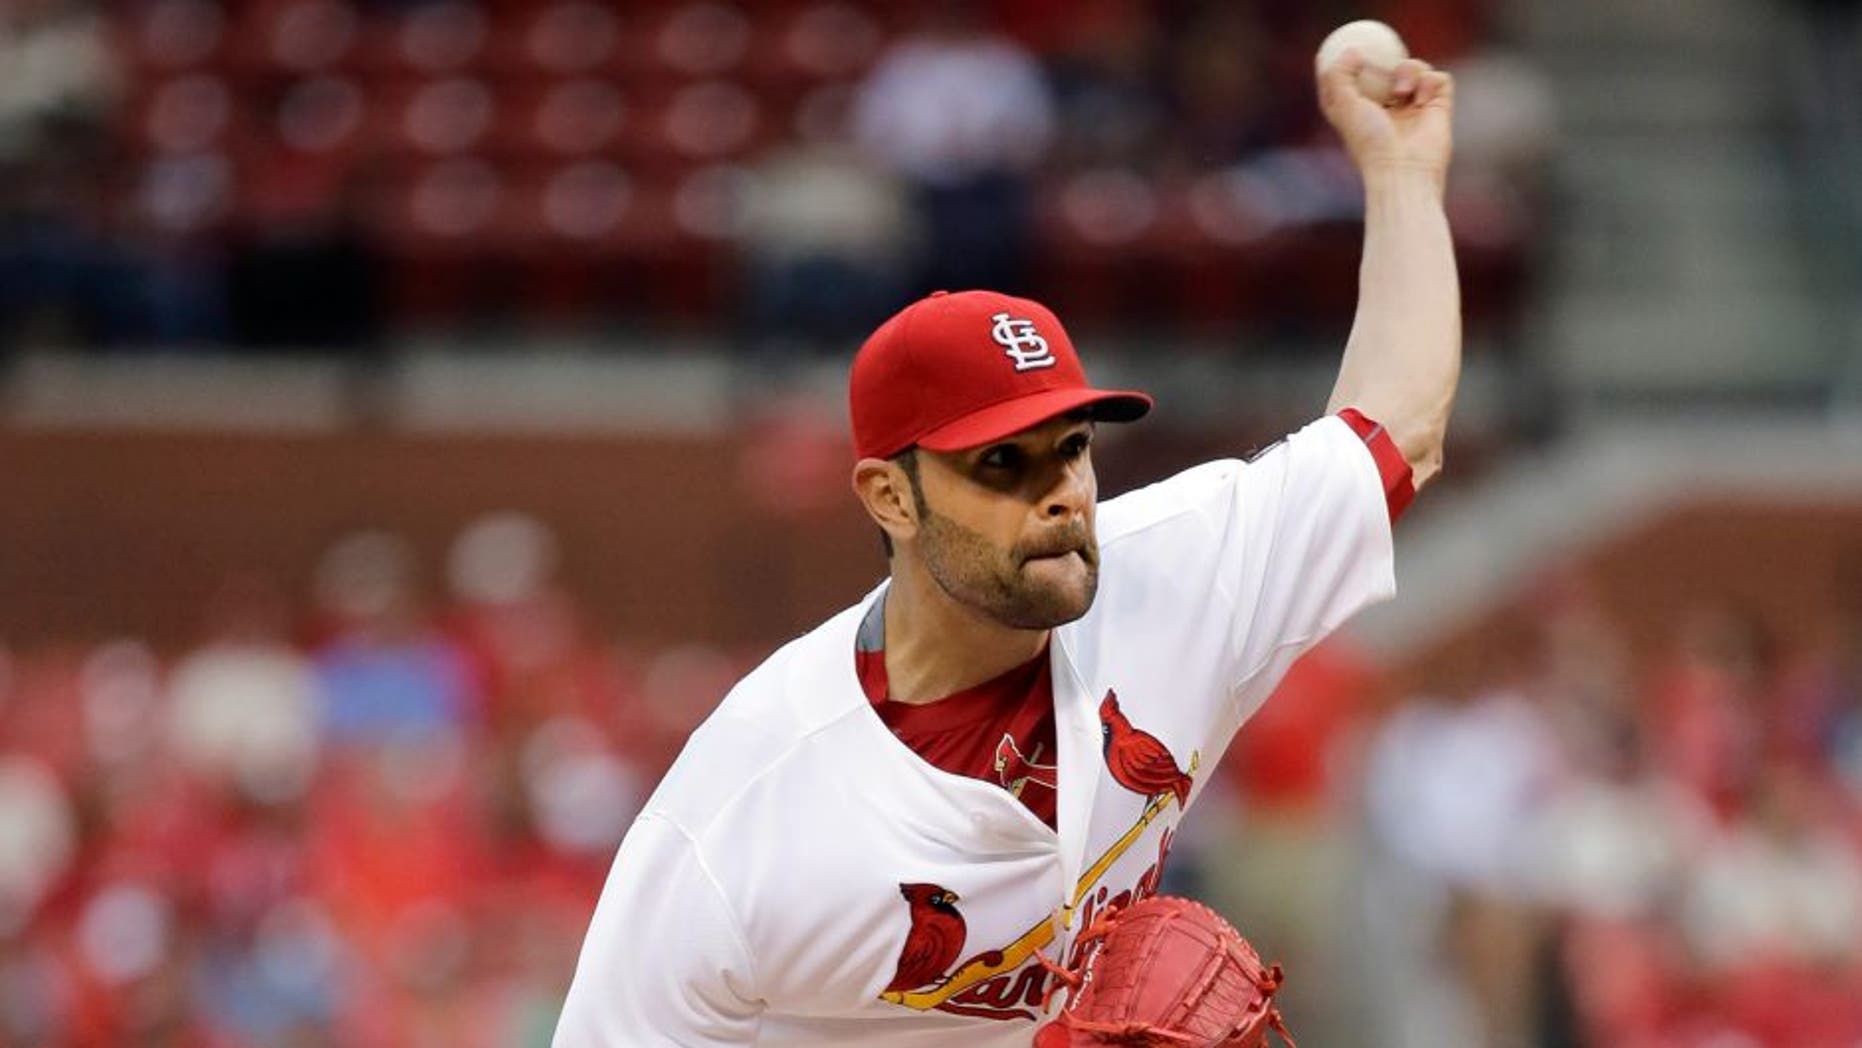 St. Louis Cardinals starting pitcher Jaime Garcia throws during the first inning of a baseball game against the San Francisco Giants, Wednesday, Aug. 19, 2015, in St. Louis. (AP Photo/Jeff Roberson)